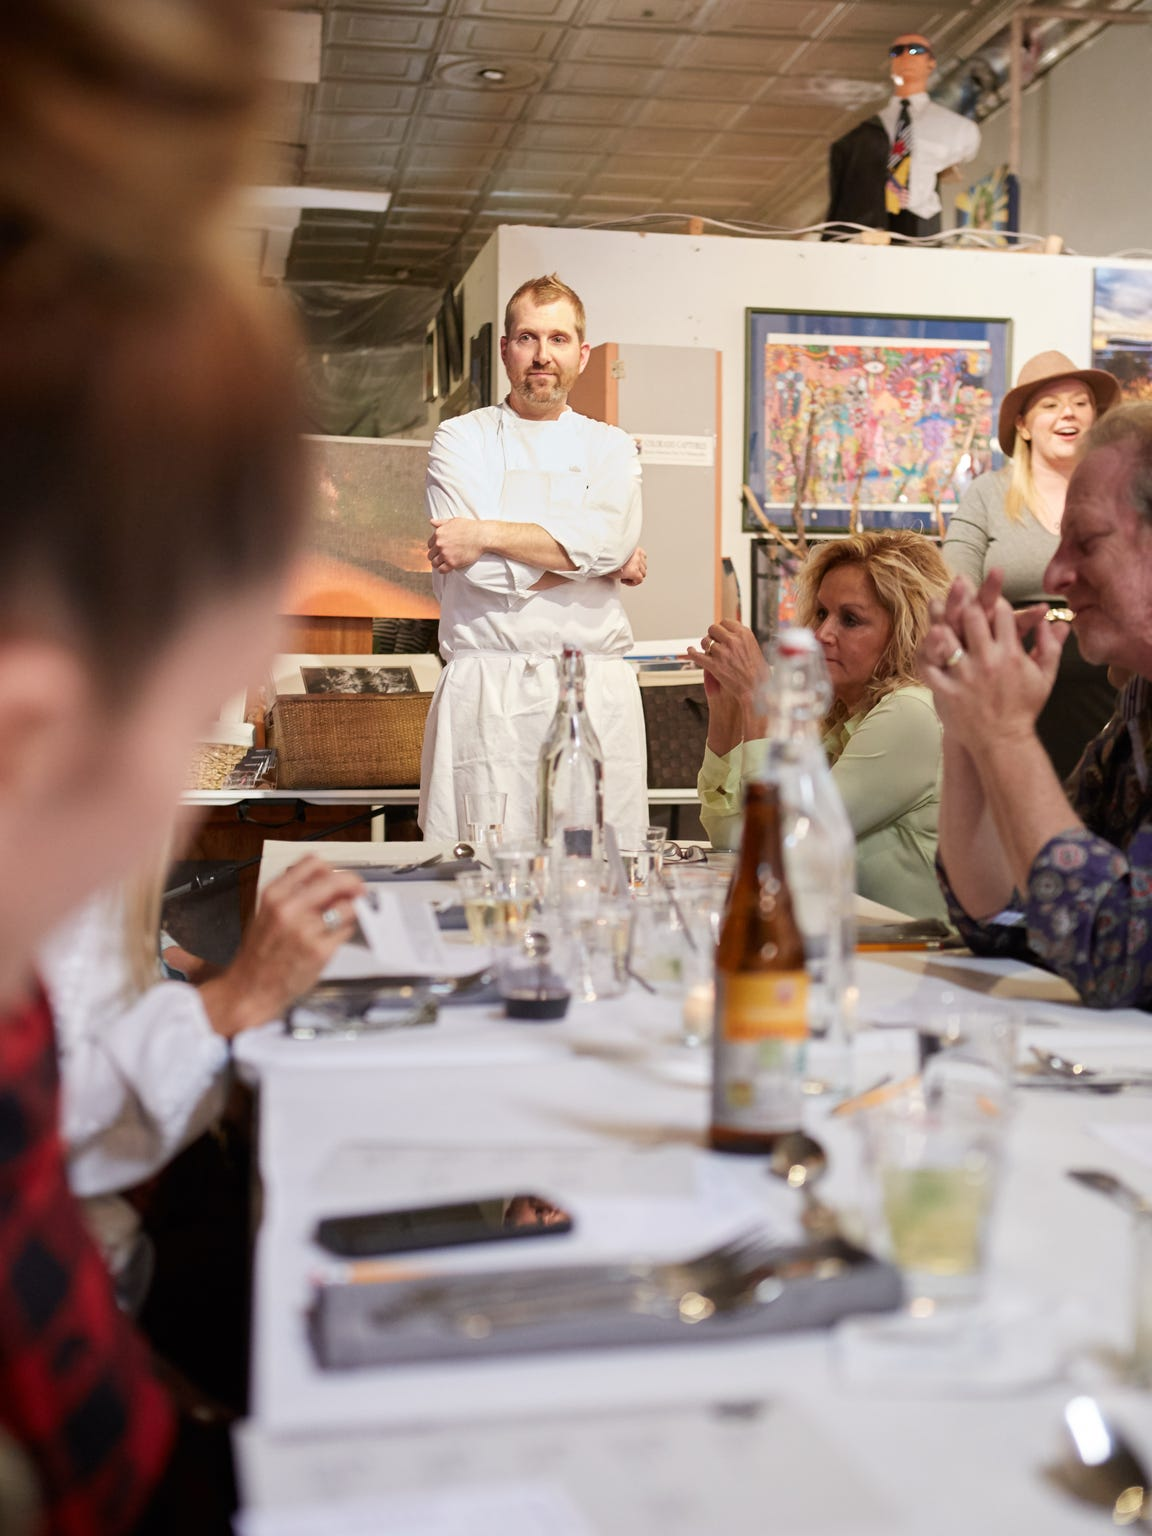 Diners enjoy a pop-up restaurant at the Denver Art Society, hosted by Dinner Lab and featuring chef Aaron Grosskopf of San Francisco, on Saturday, Nov. 1, 2014.